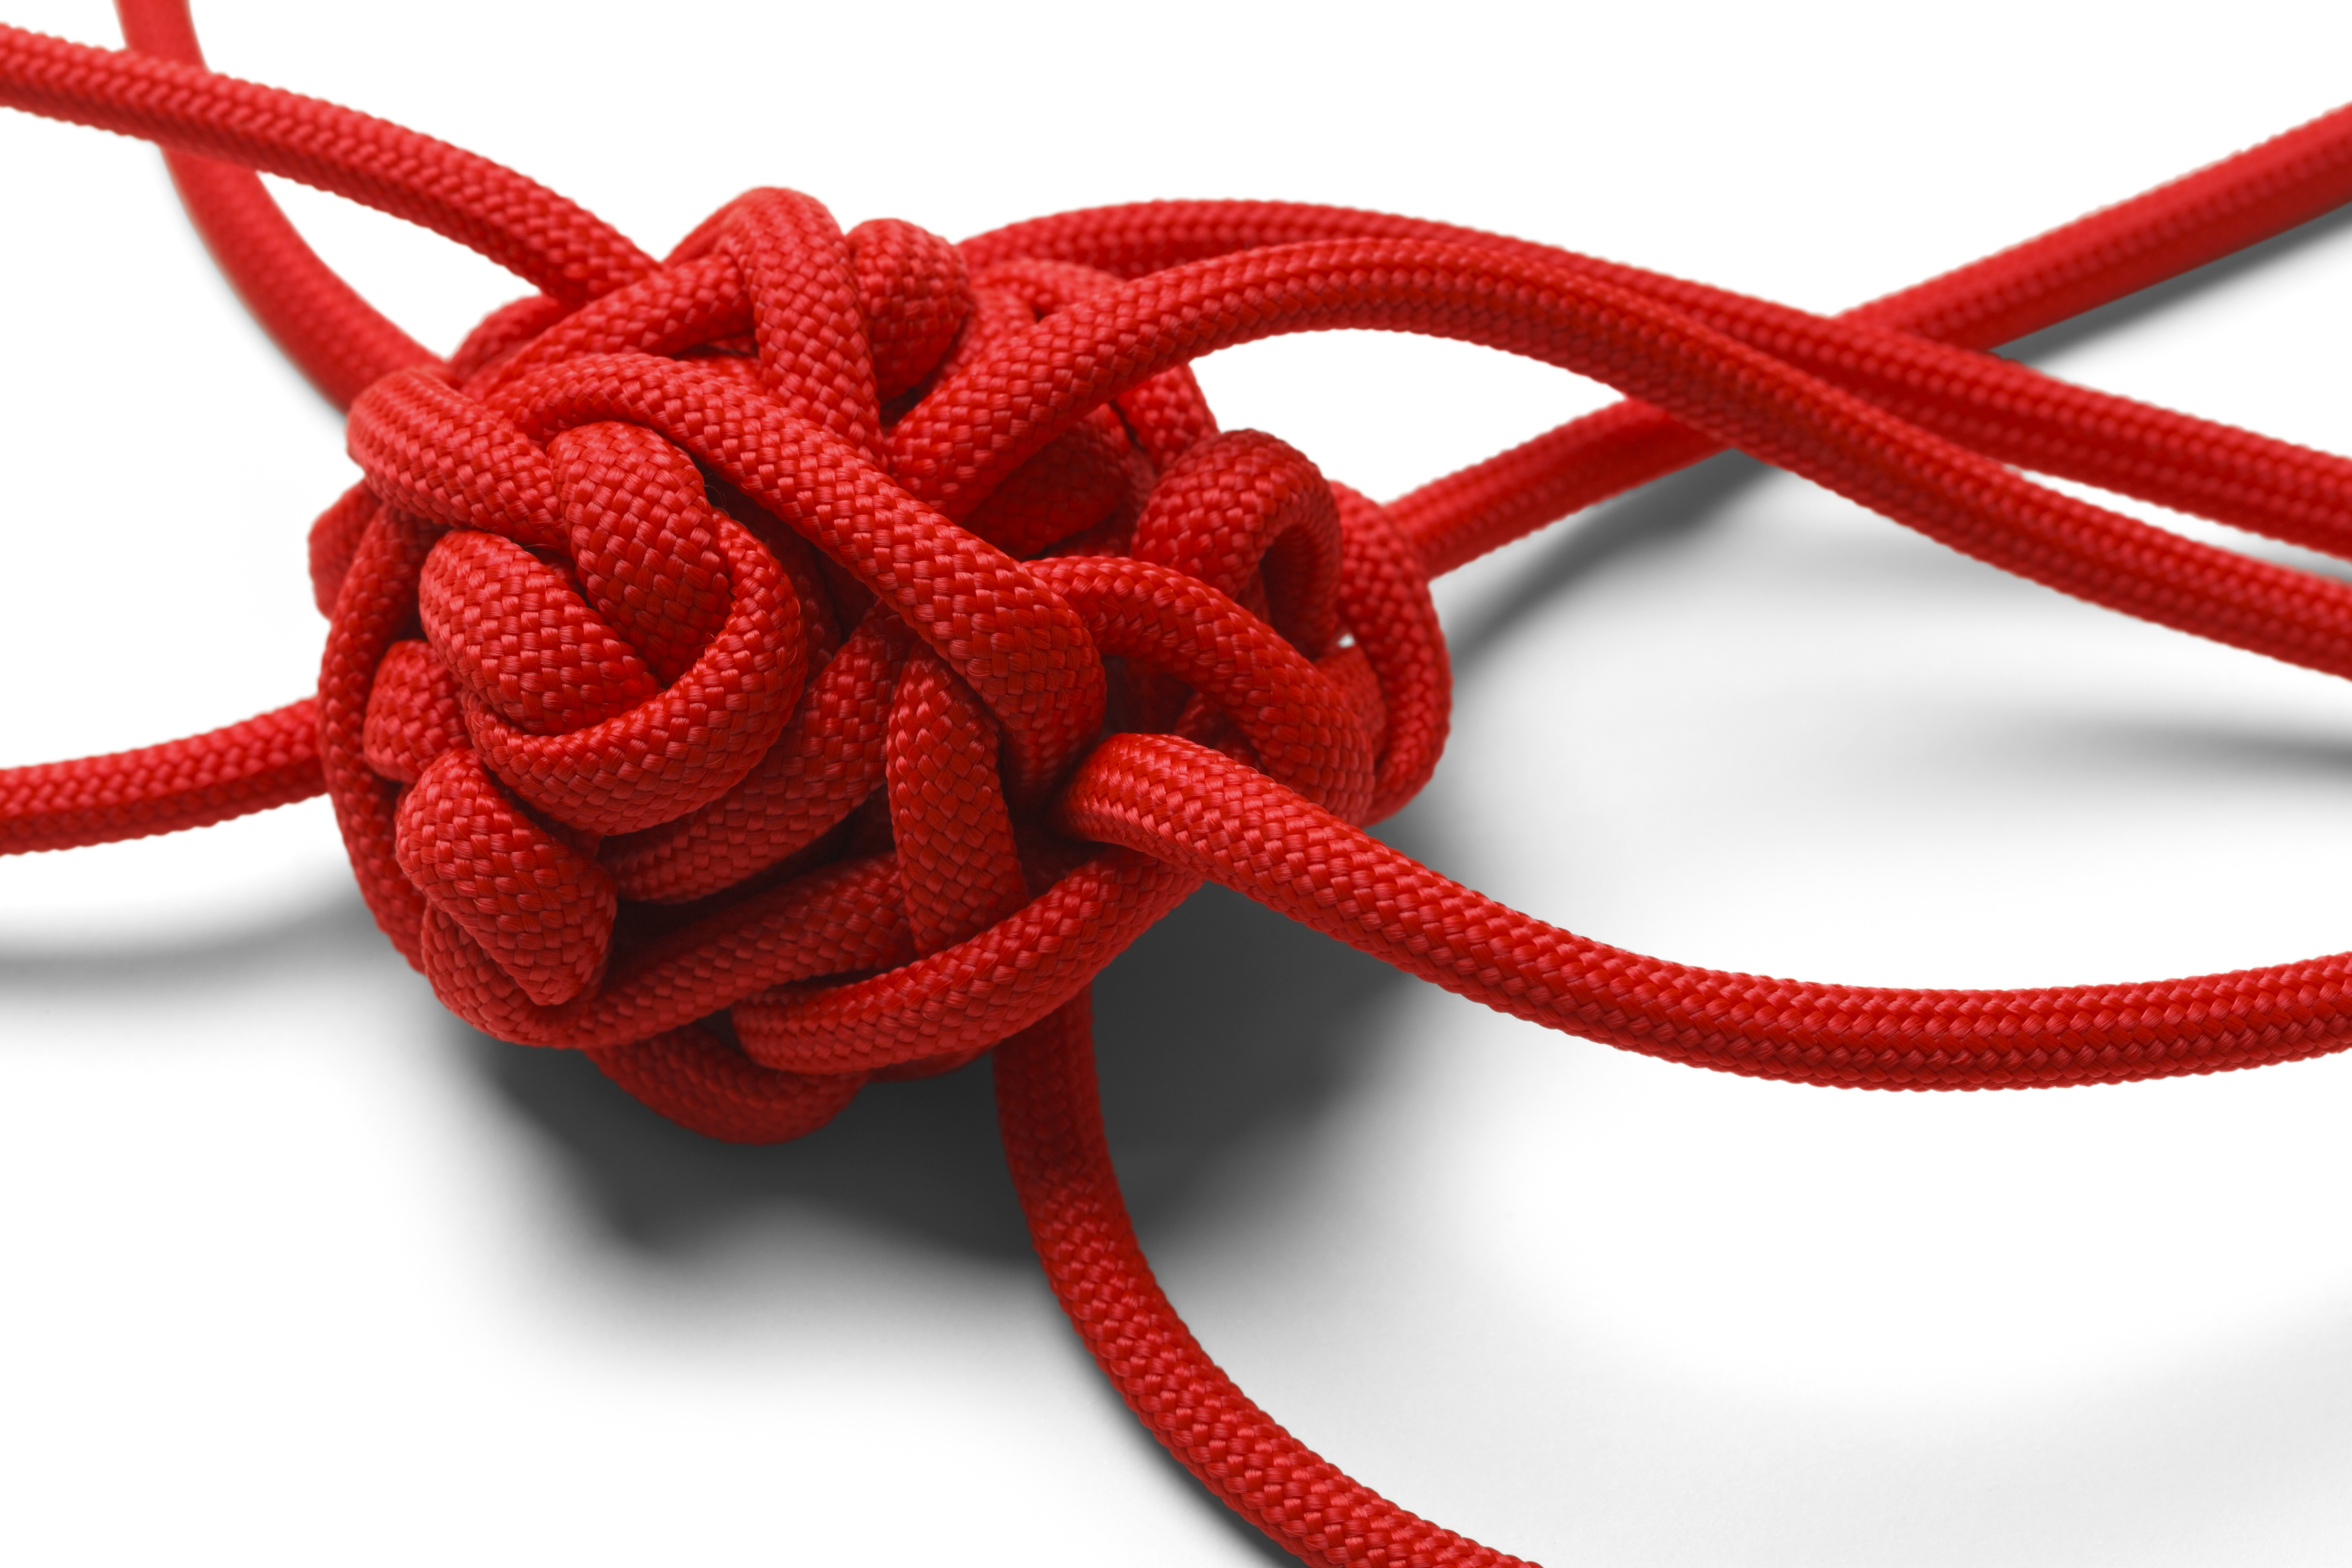 What Do Tangled Ropes and Breaking Habits Have in Common?